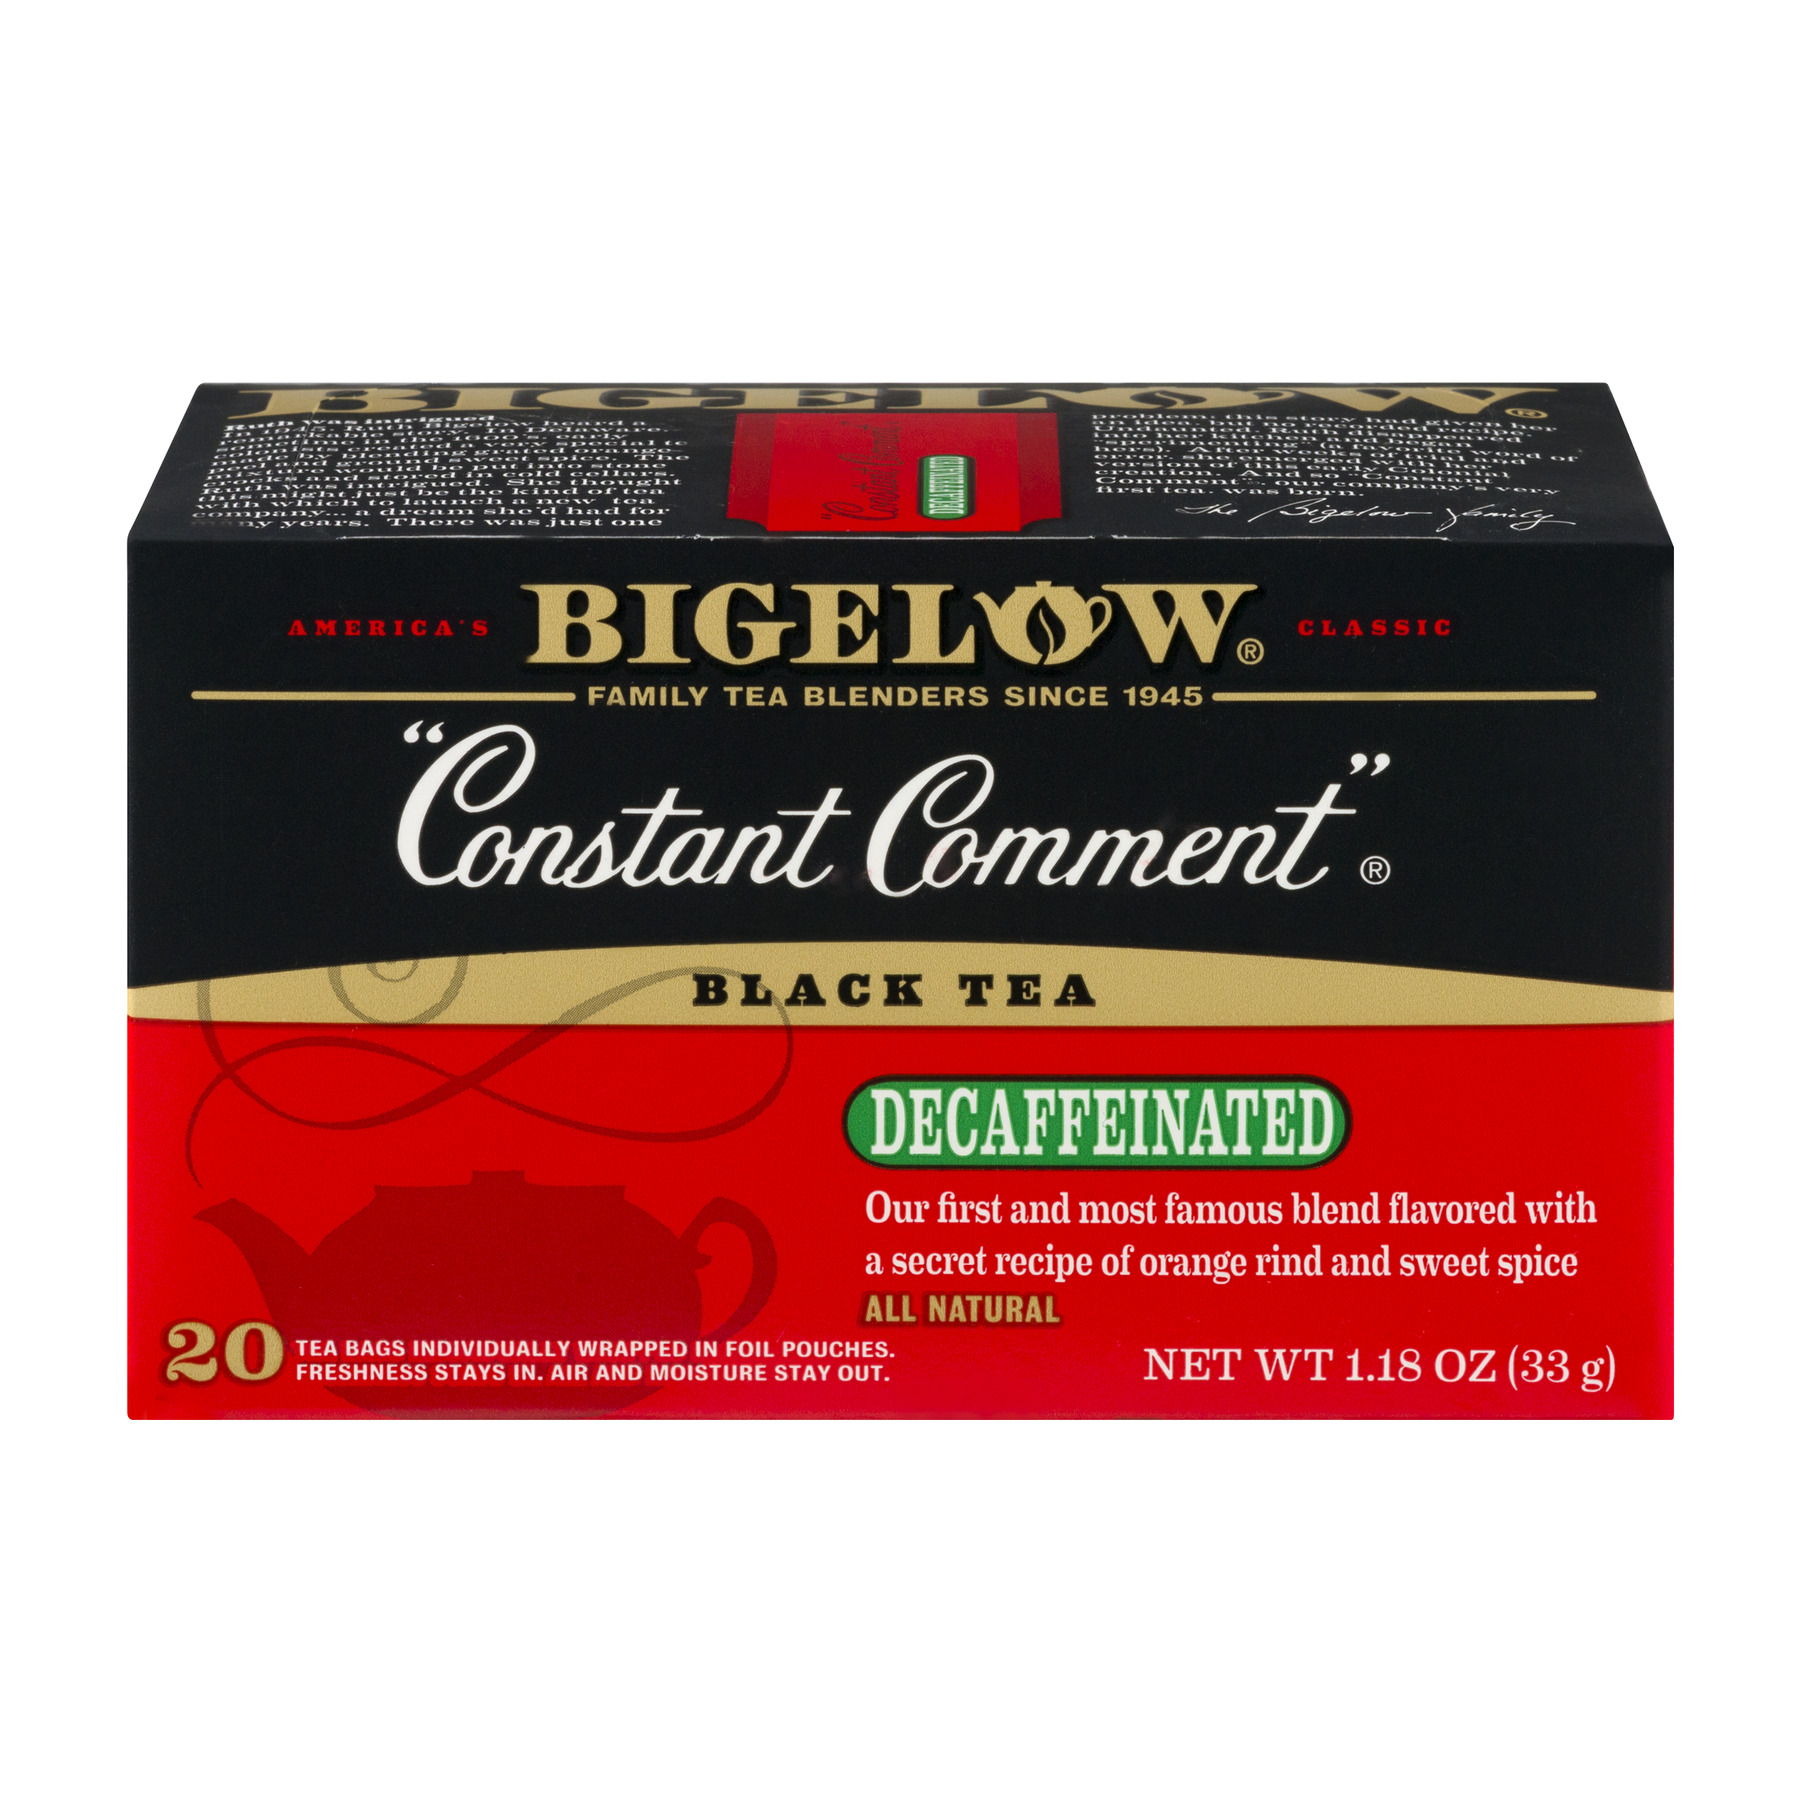 Bigelow Constant Comment Black Tea Decaffeinated - 20 CT20.0 CT